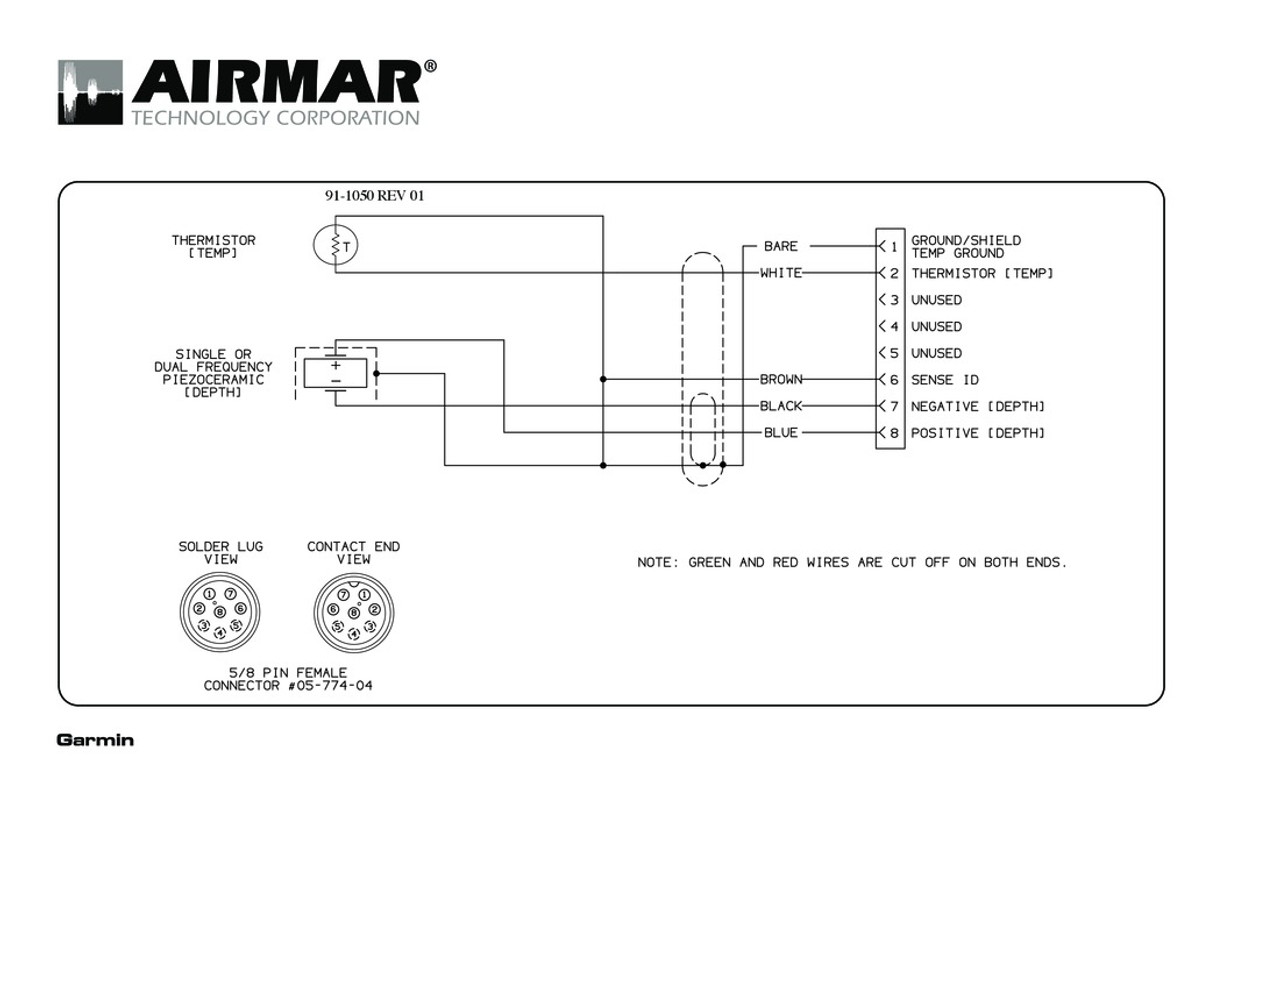 Airmar Wiring Diagram Garmin P319 8 Pin  D T